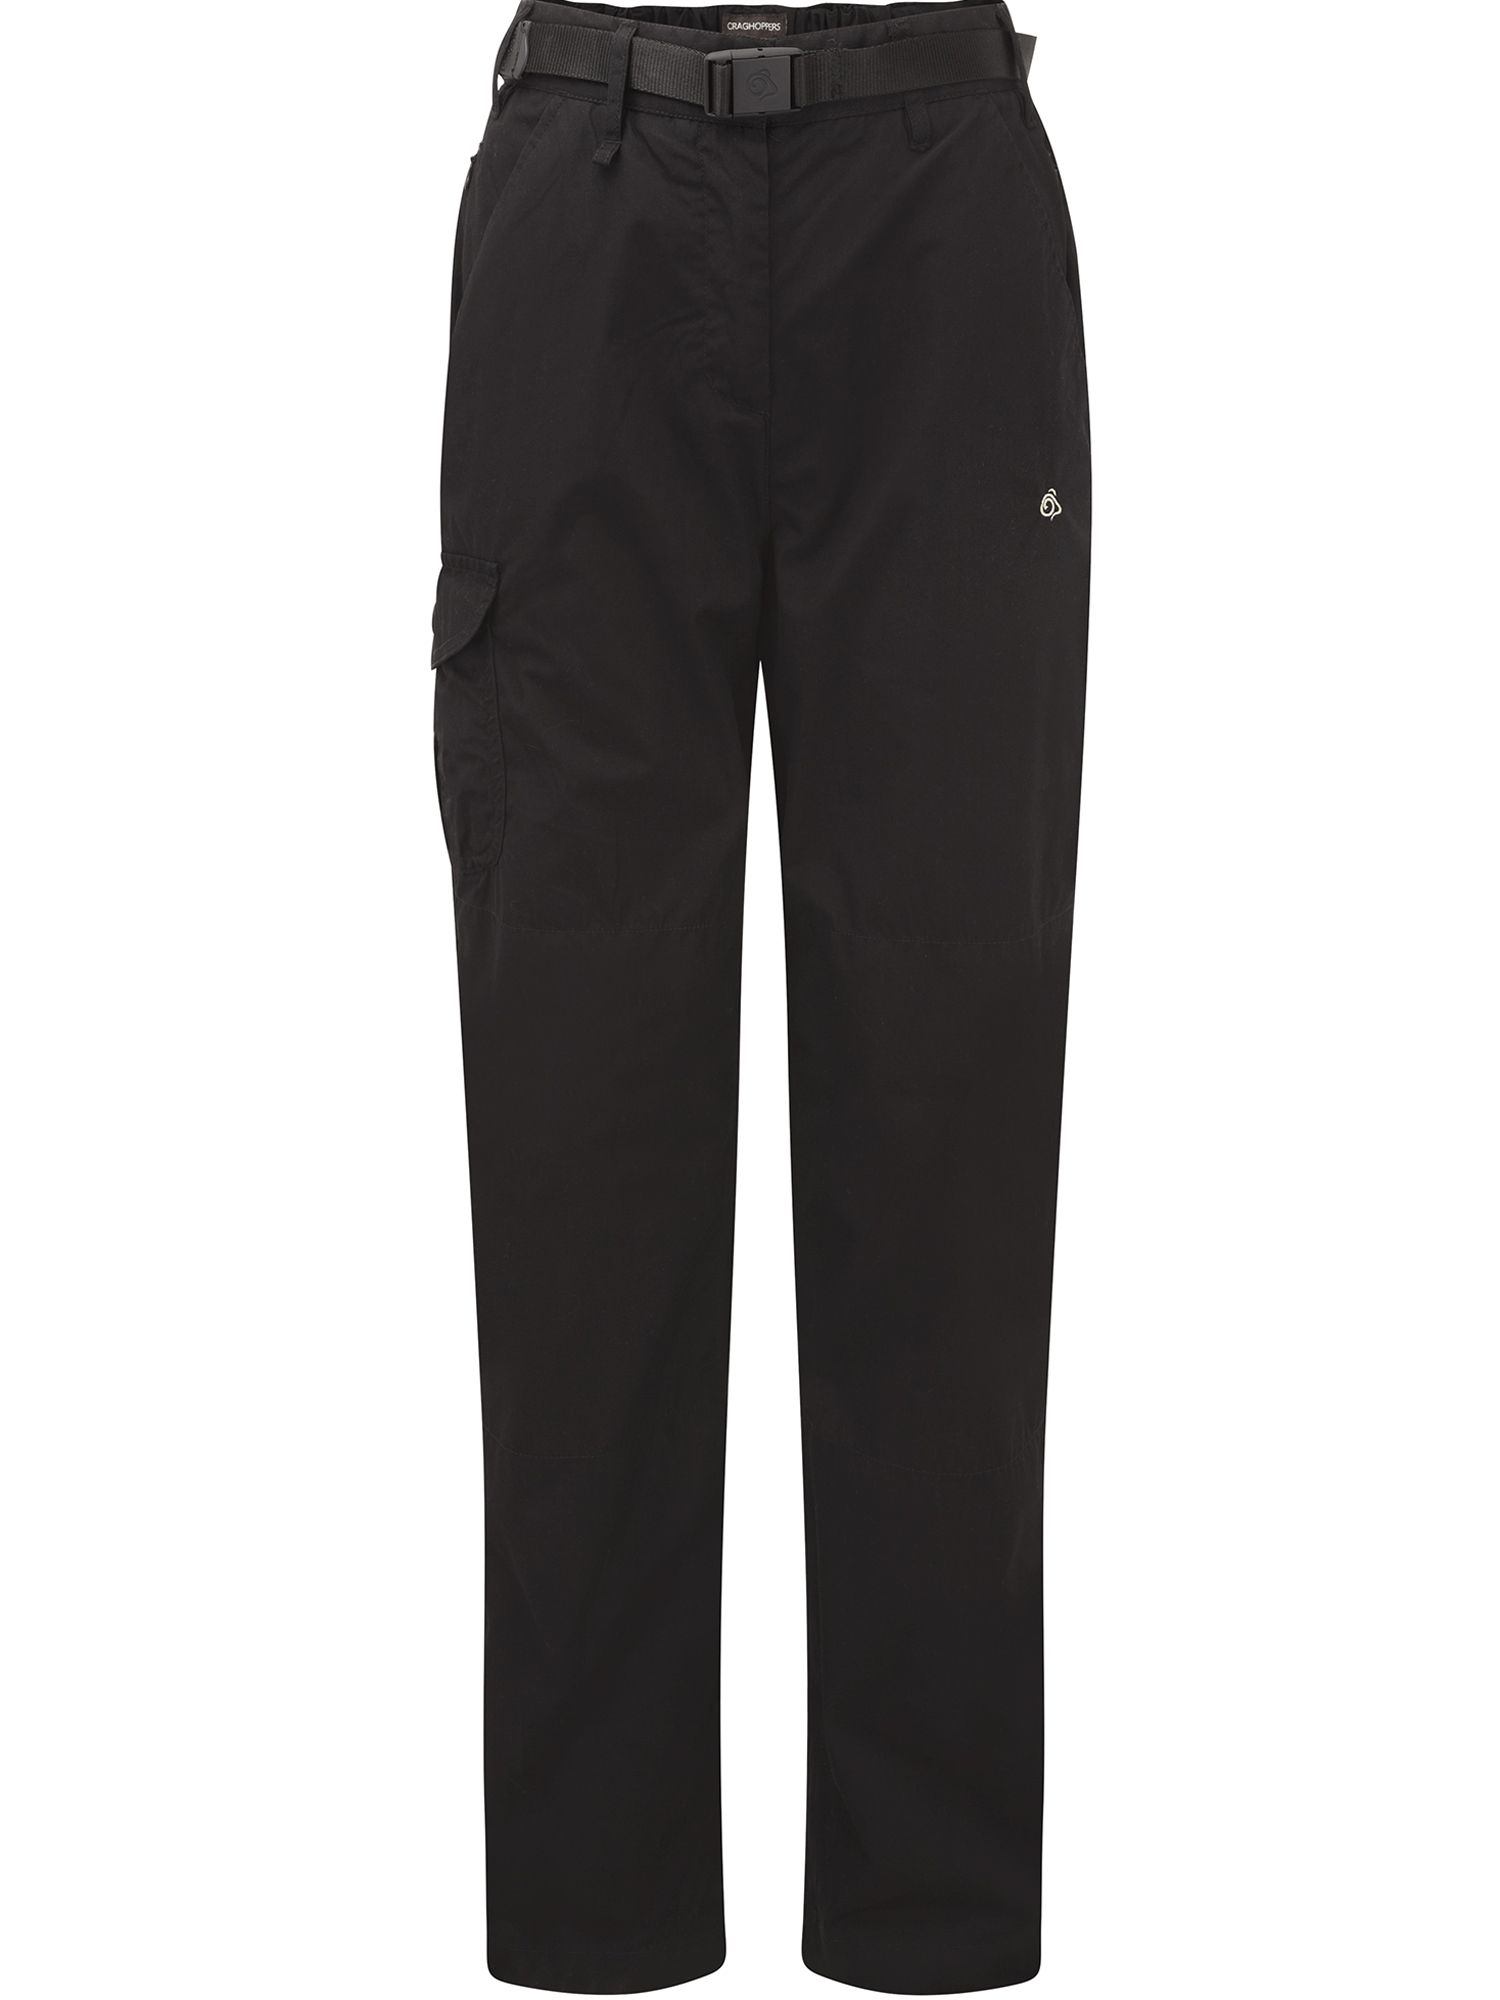 Craghoppers Classic  Kiwi Trousers, Black